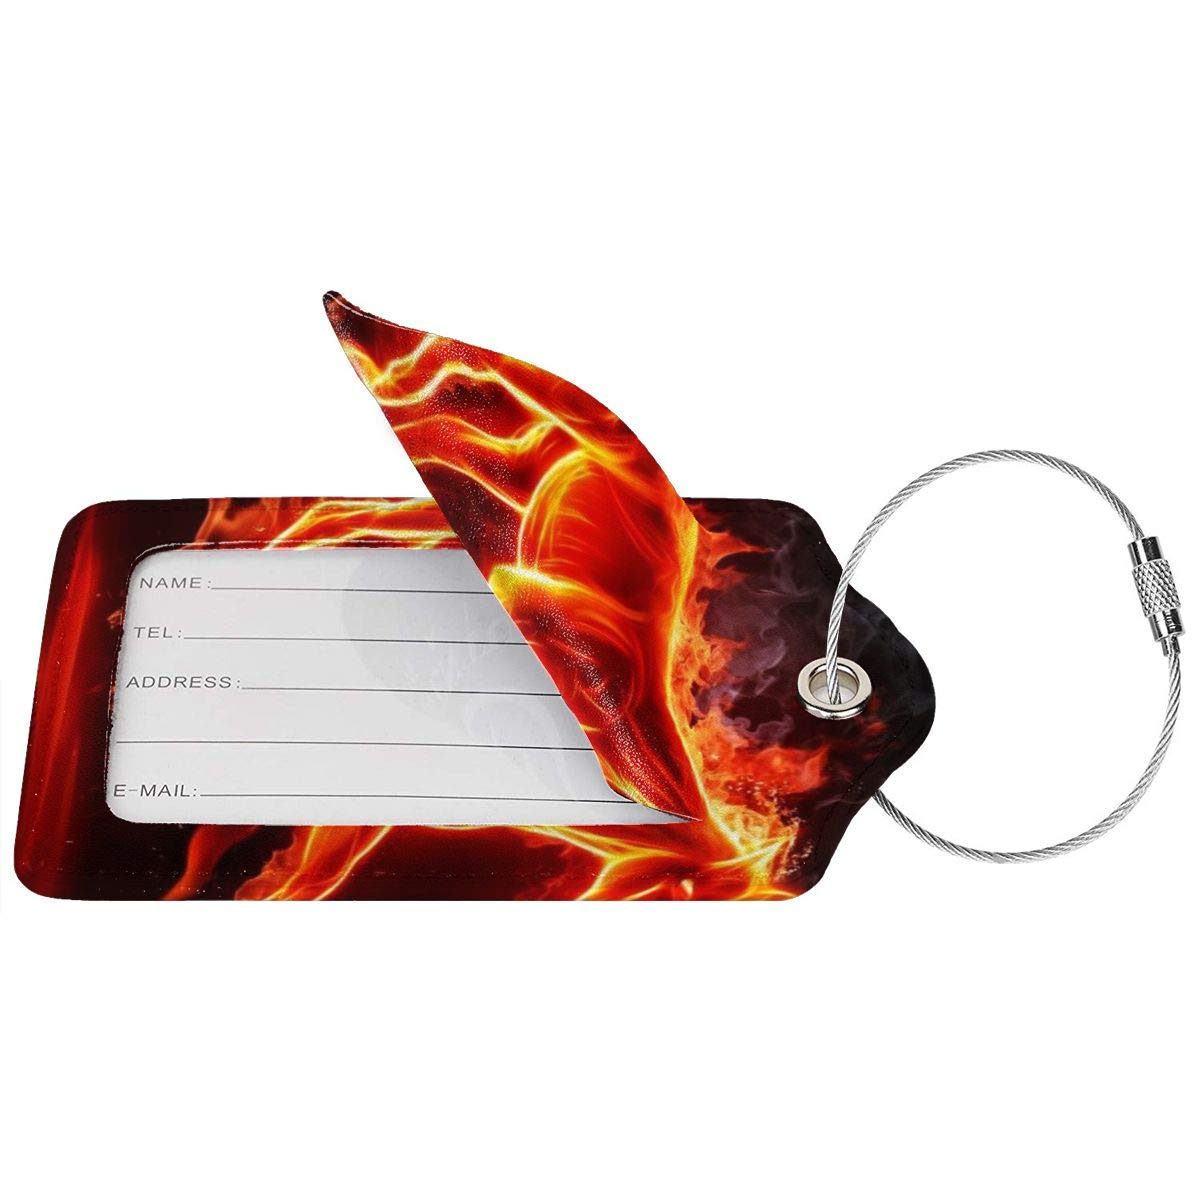 3D Animal Fire Horse Luggage Tag Label Travel Bag Label With Privacy Cover Luggage Tag Leather Personalized Suitcase Tag Travel Accessories